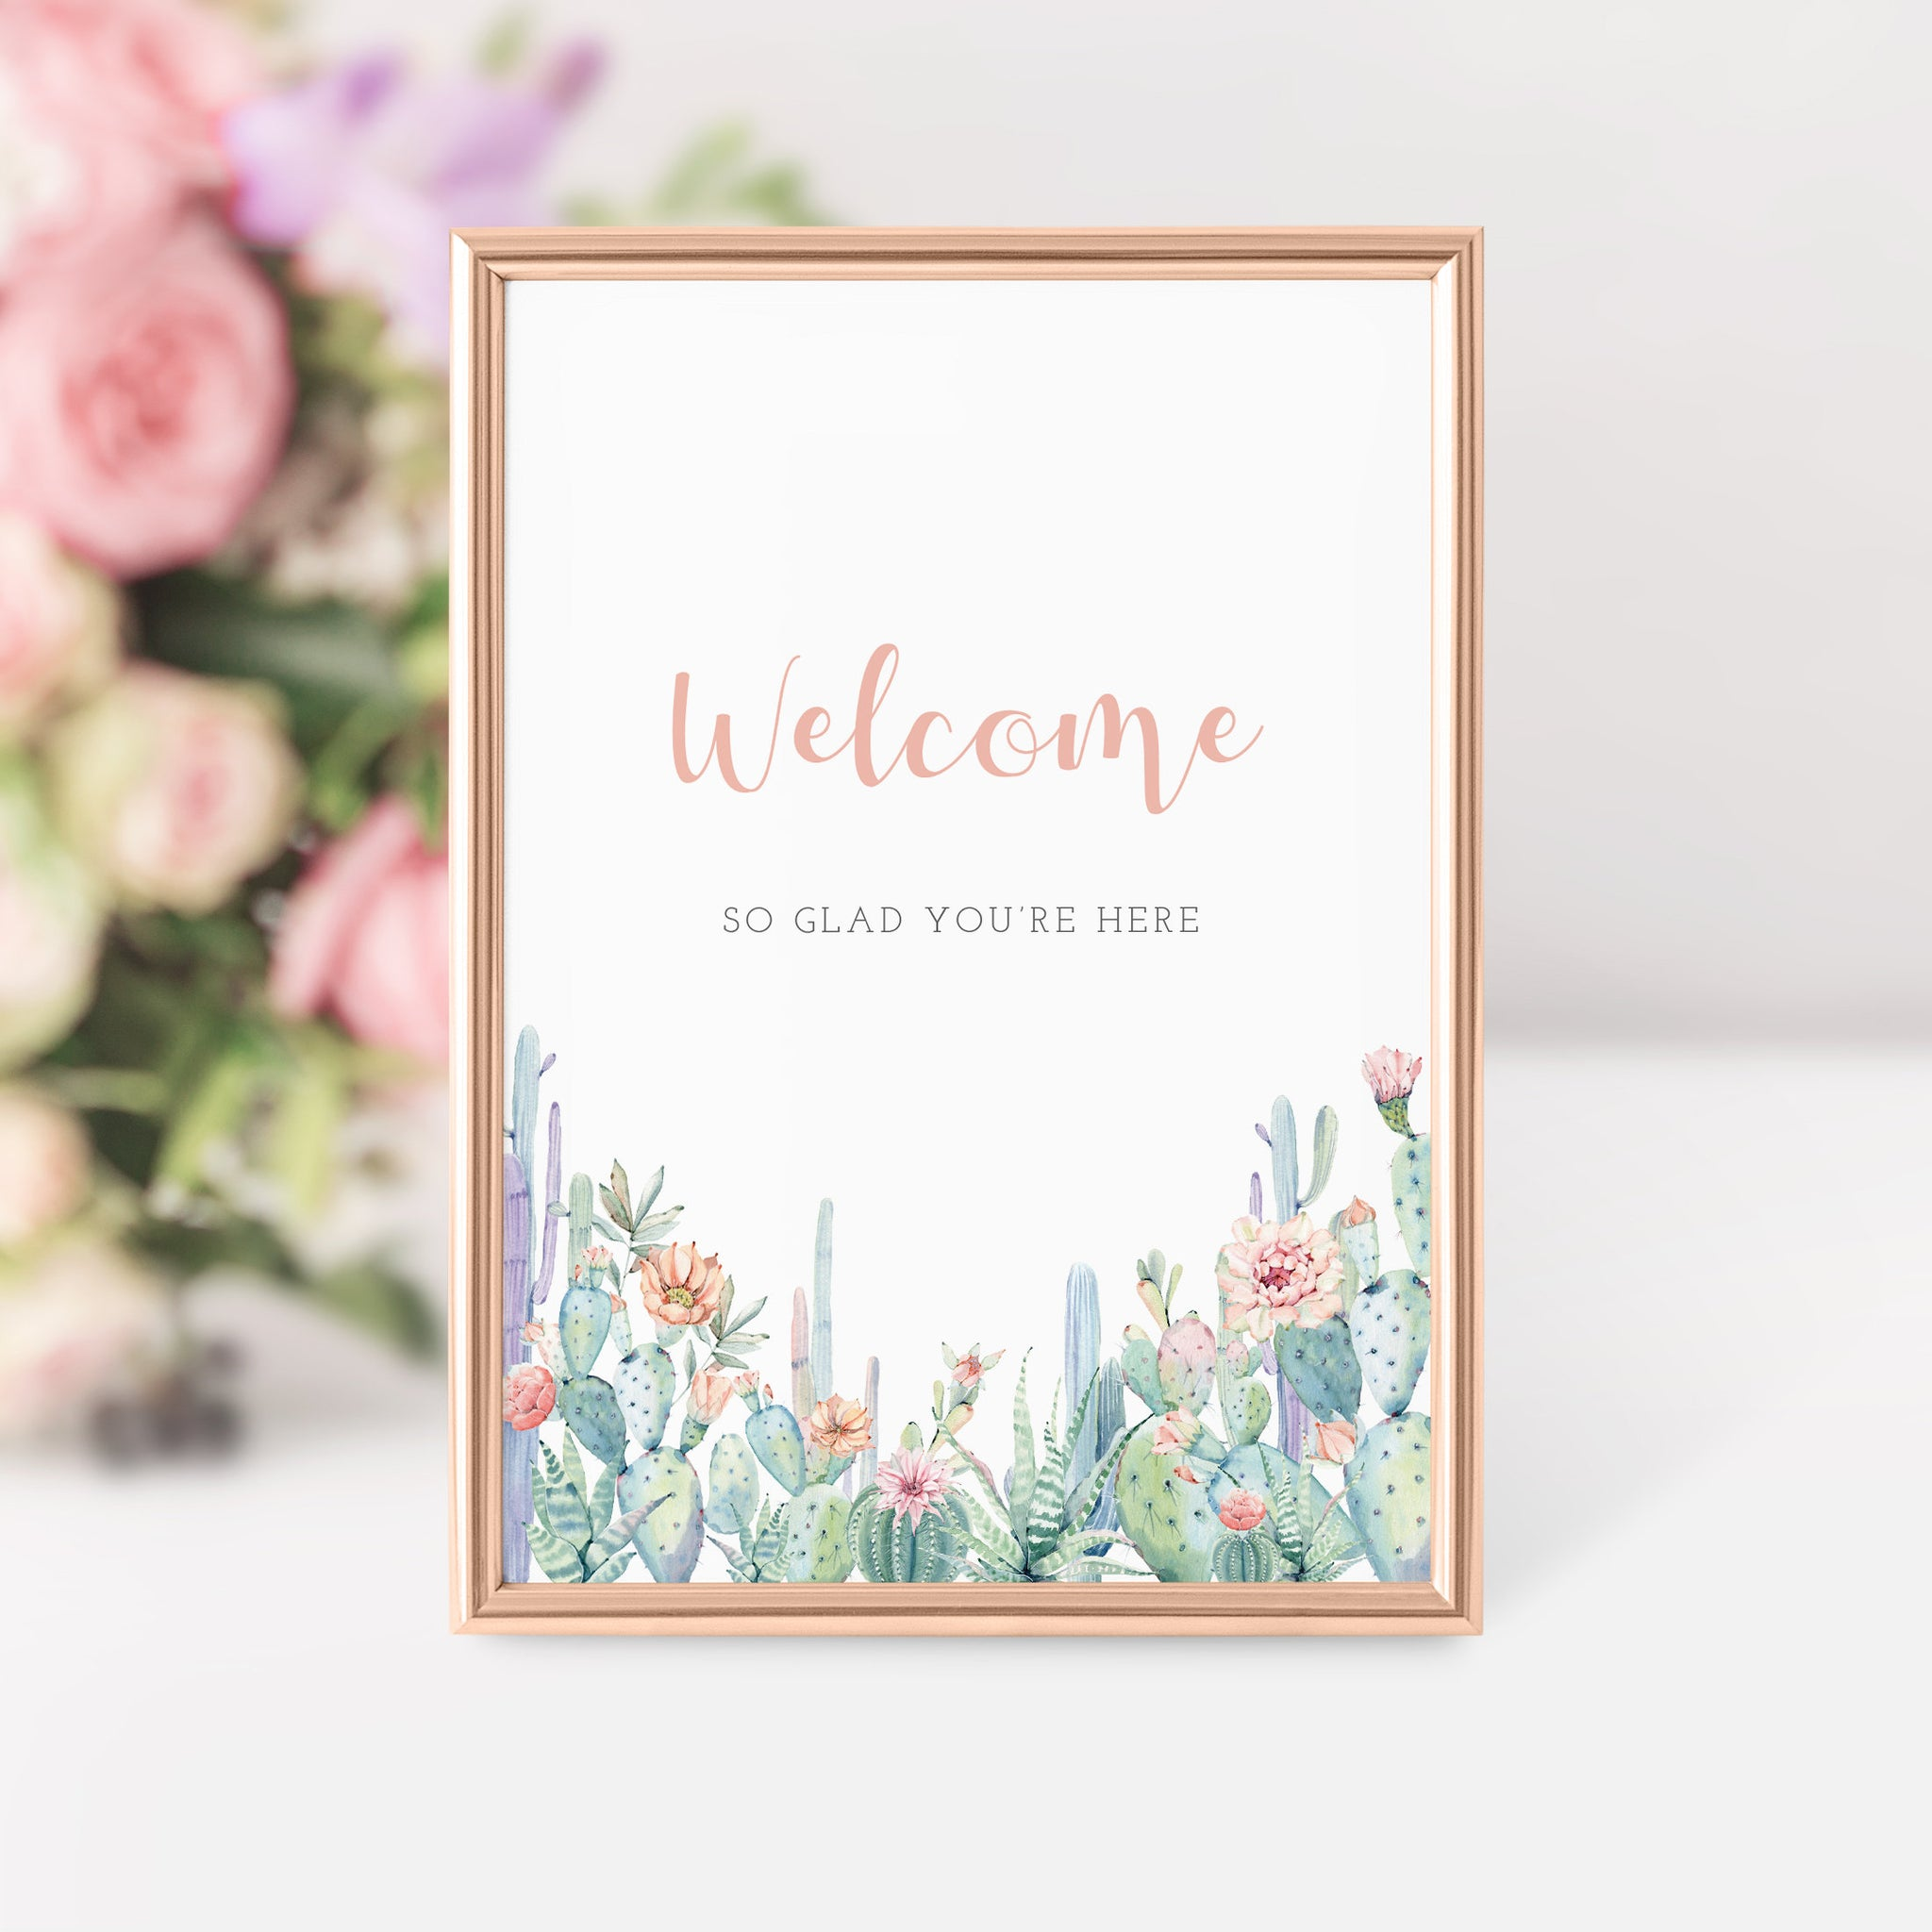 Succulent Welcome Sign Printable, Cactus Bridal Shower Welcome Sign, Cactus Baby Shower Welcome Sign, DIGITAL DOWNLOAD - CS100 - @PlumPolkaDot